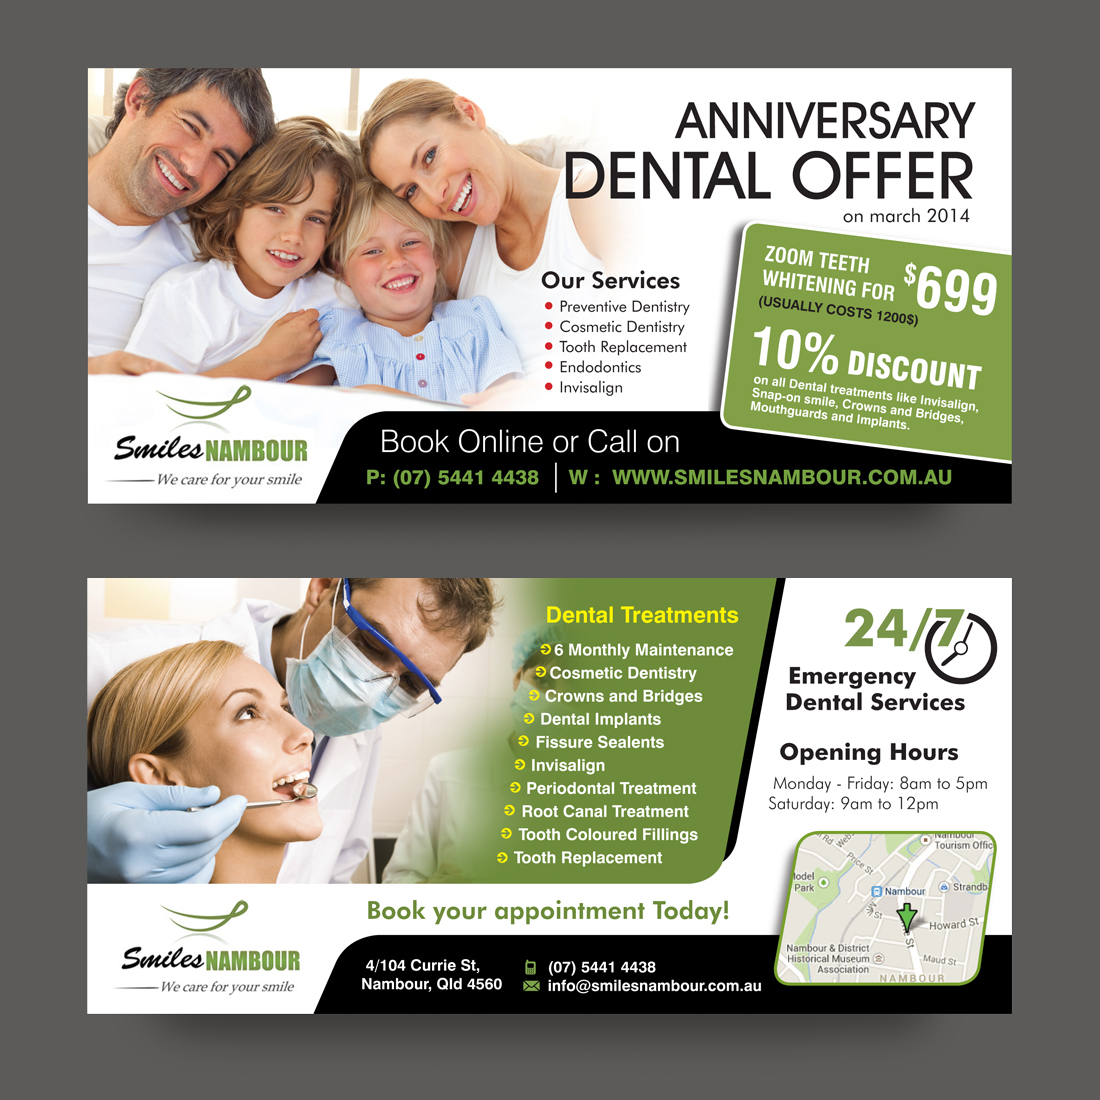 Professional dental clinic flyer designs for a